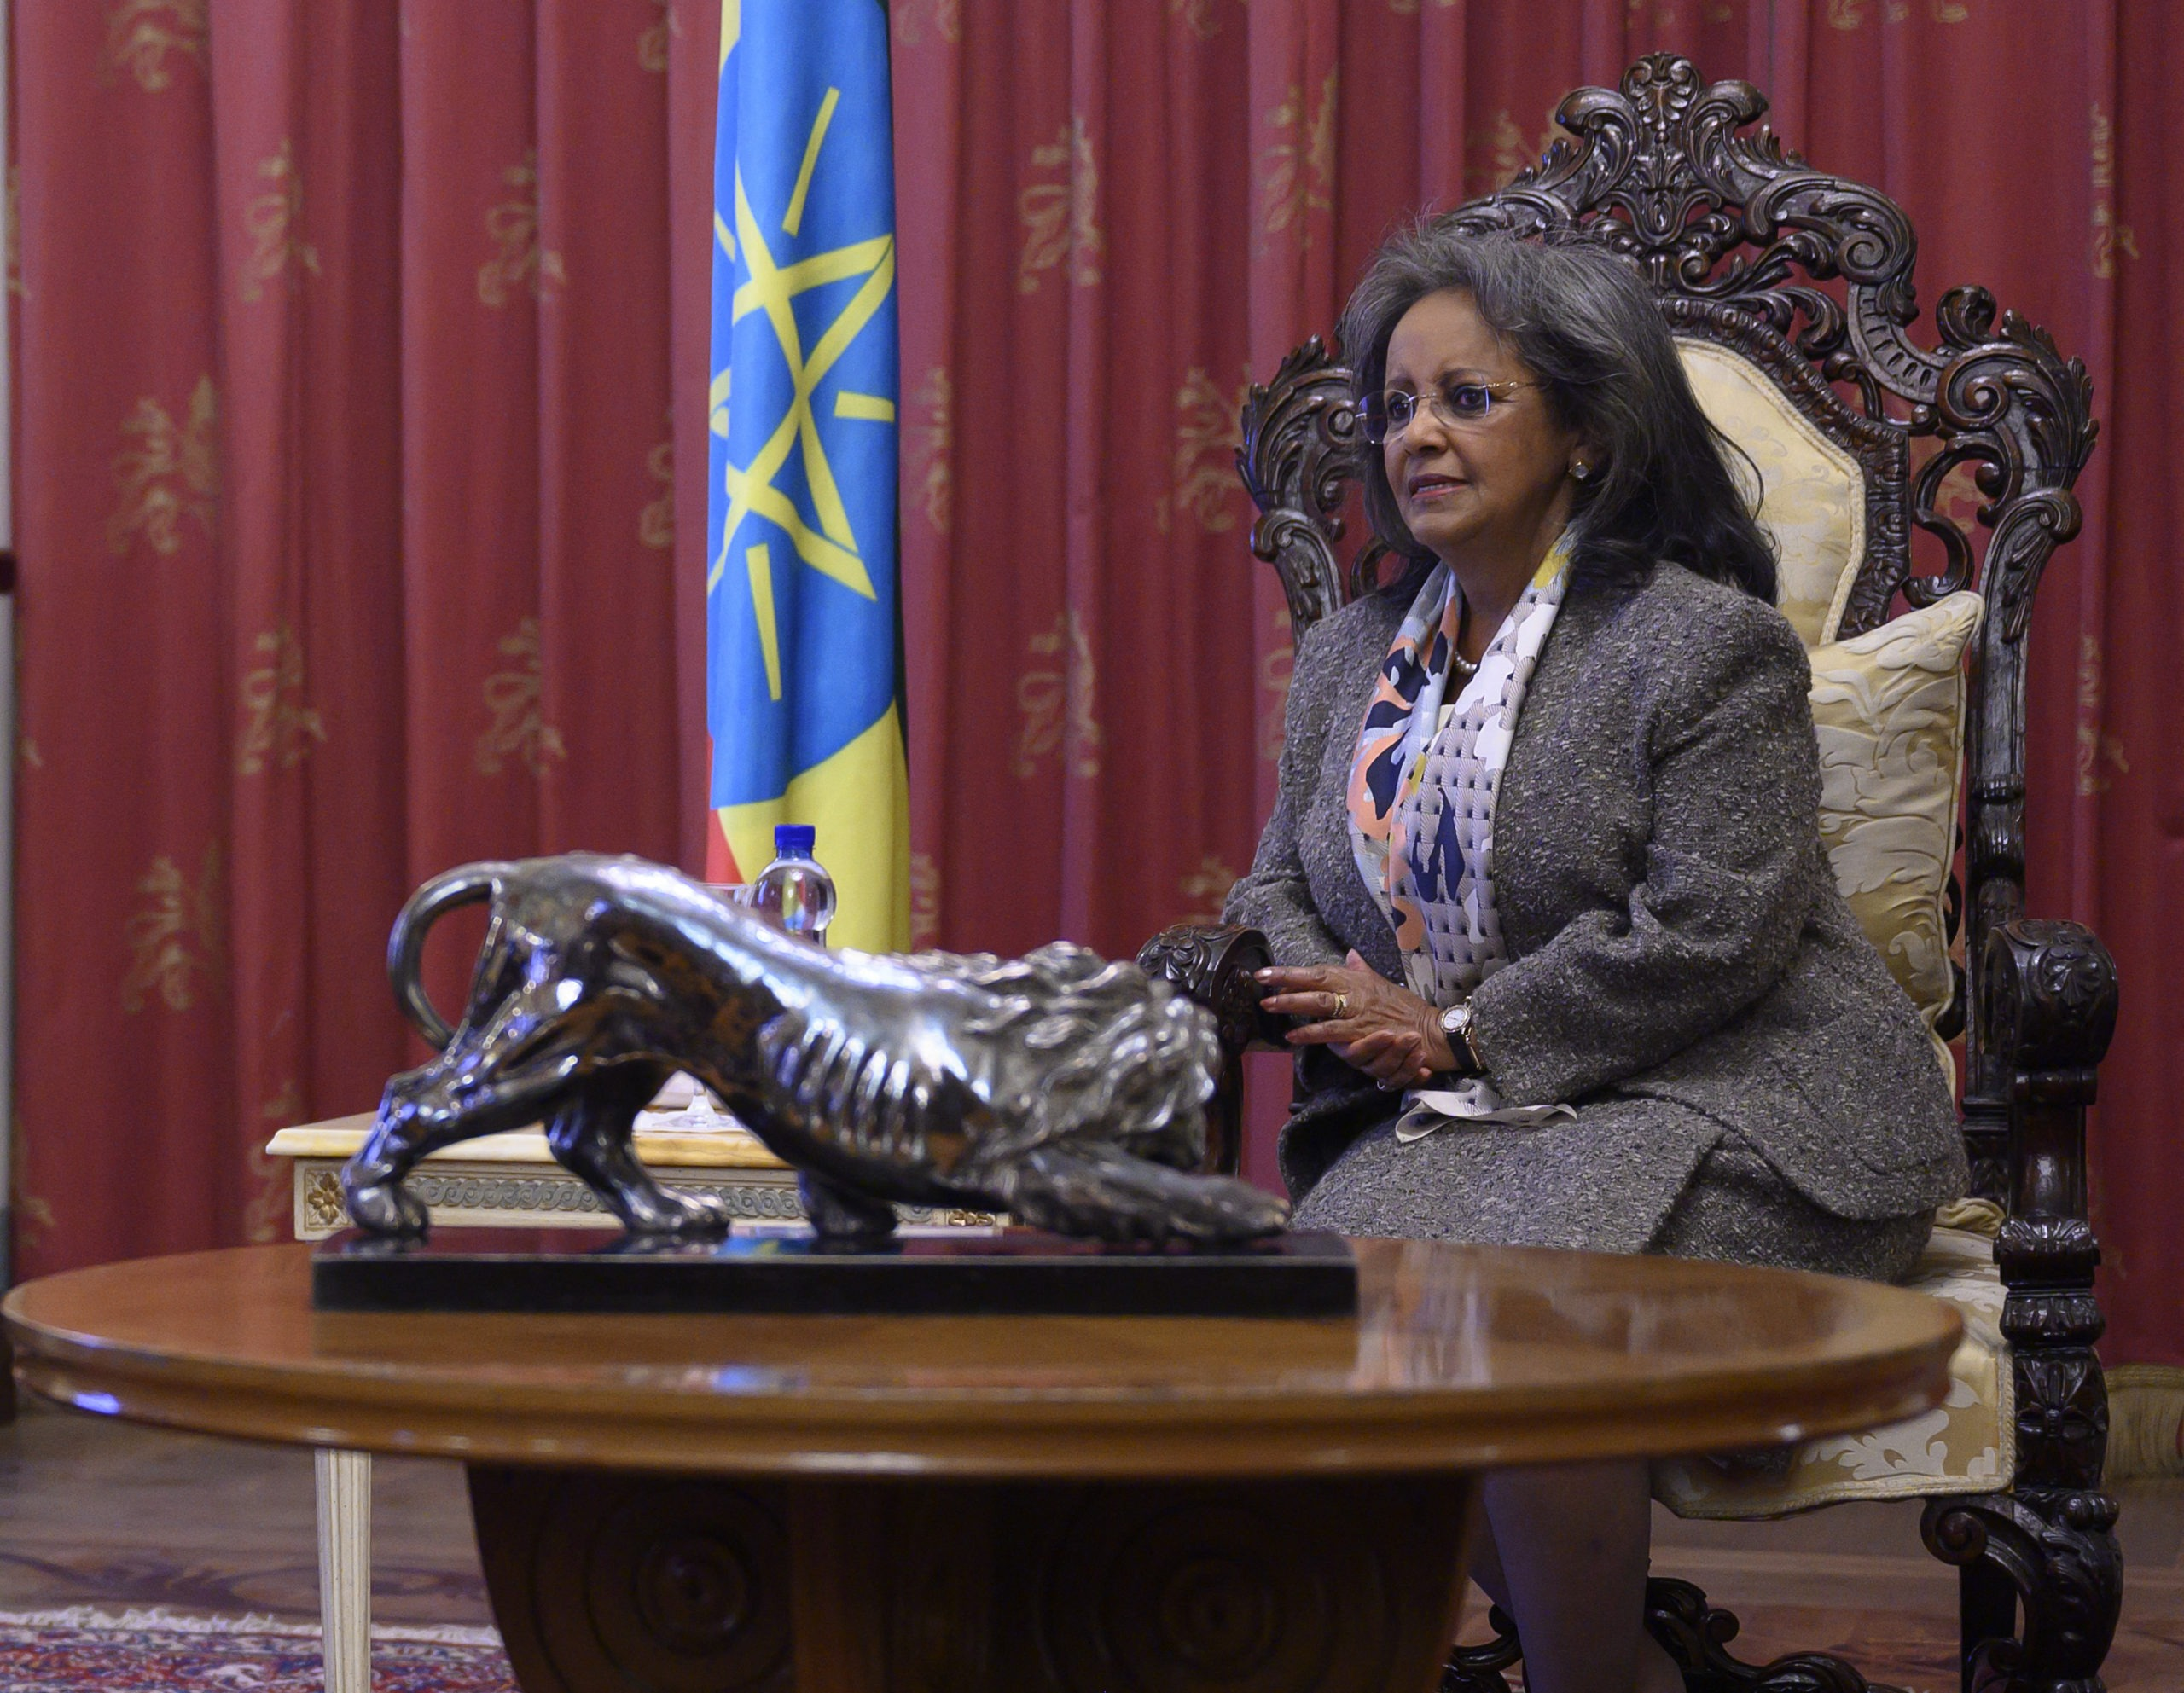 Ethiopia's woman at the top